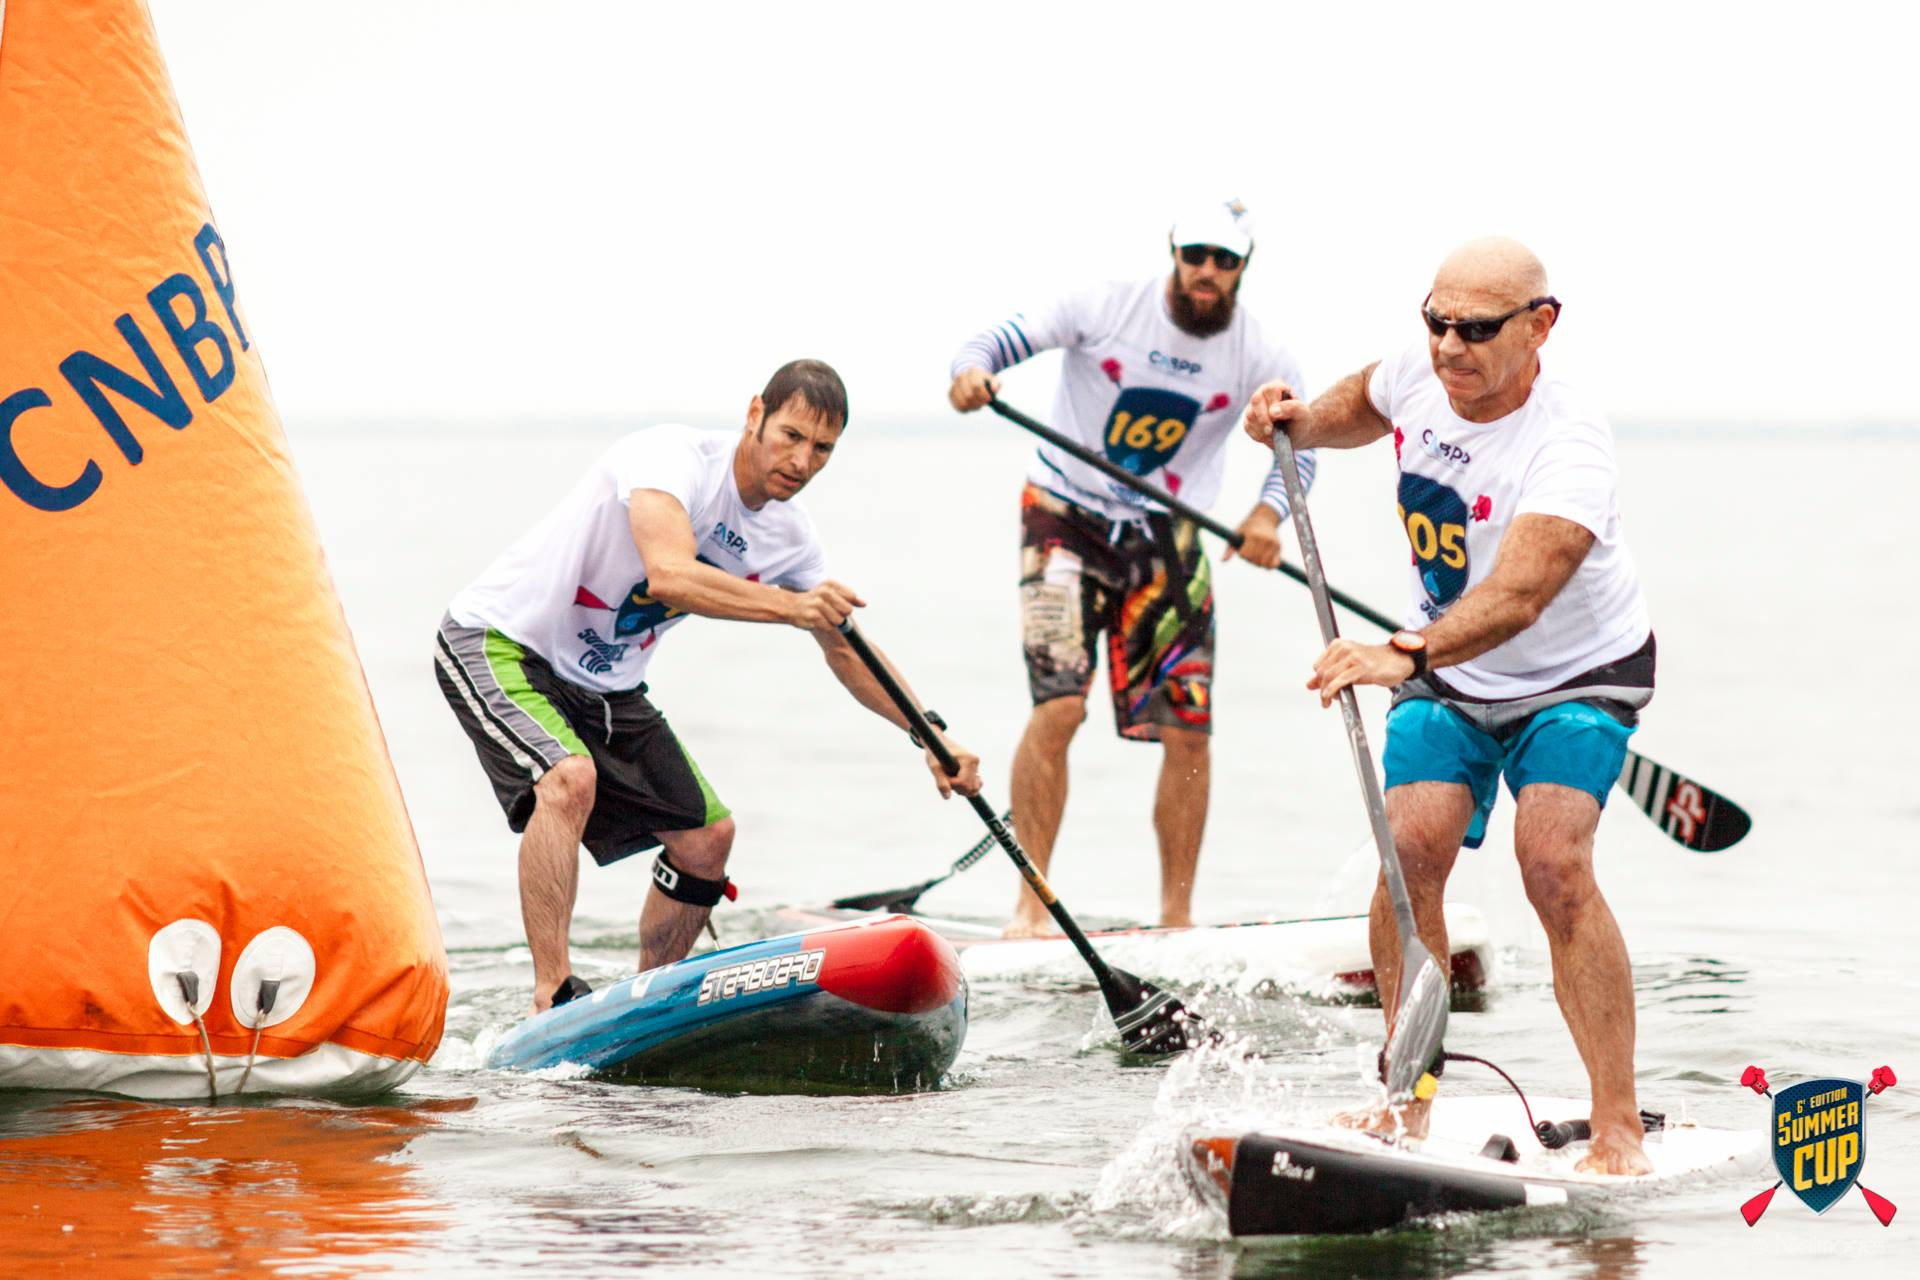 CNBPP Stand up paddle